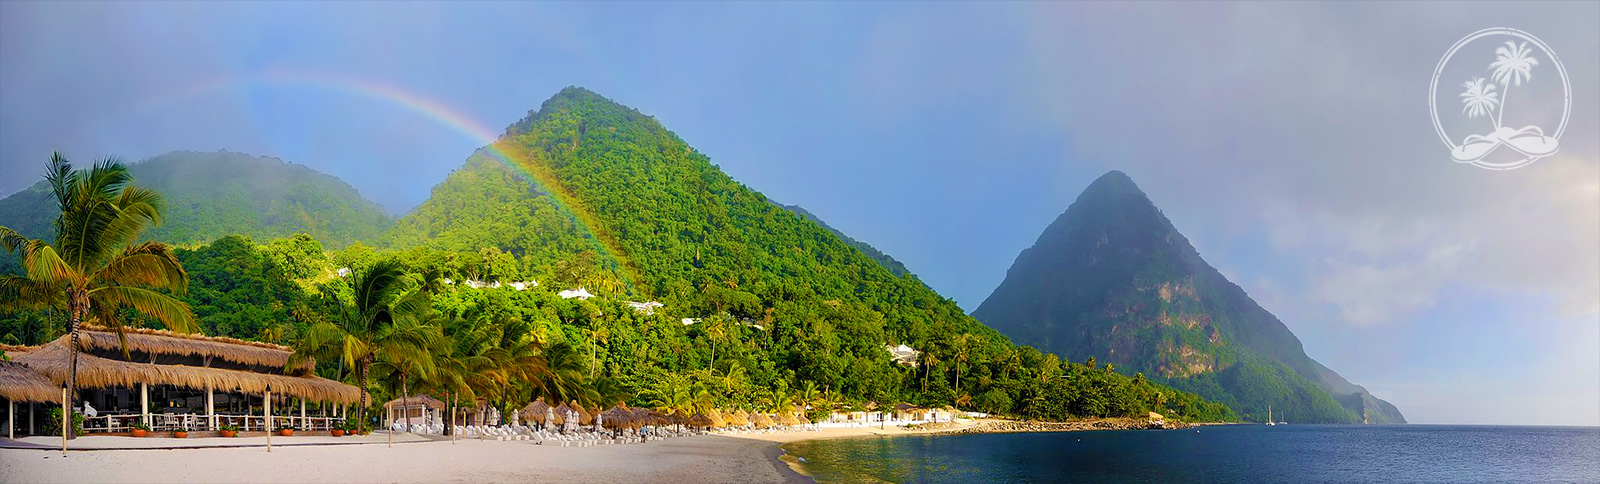 Rainbow over Sugar Beach